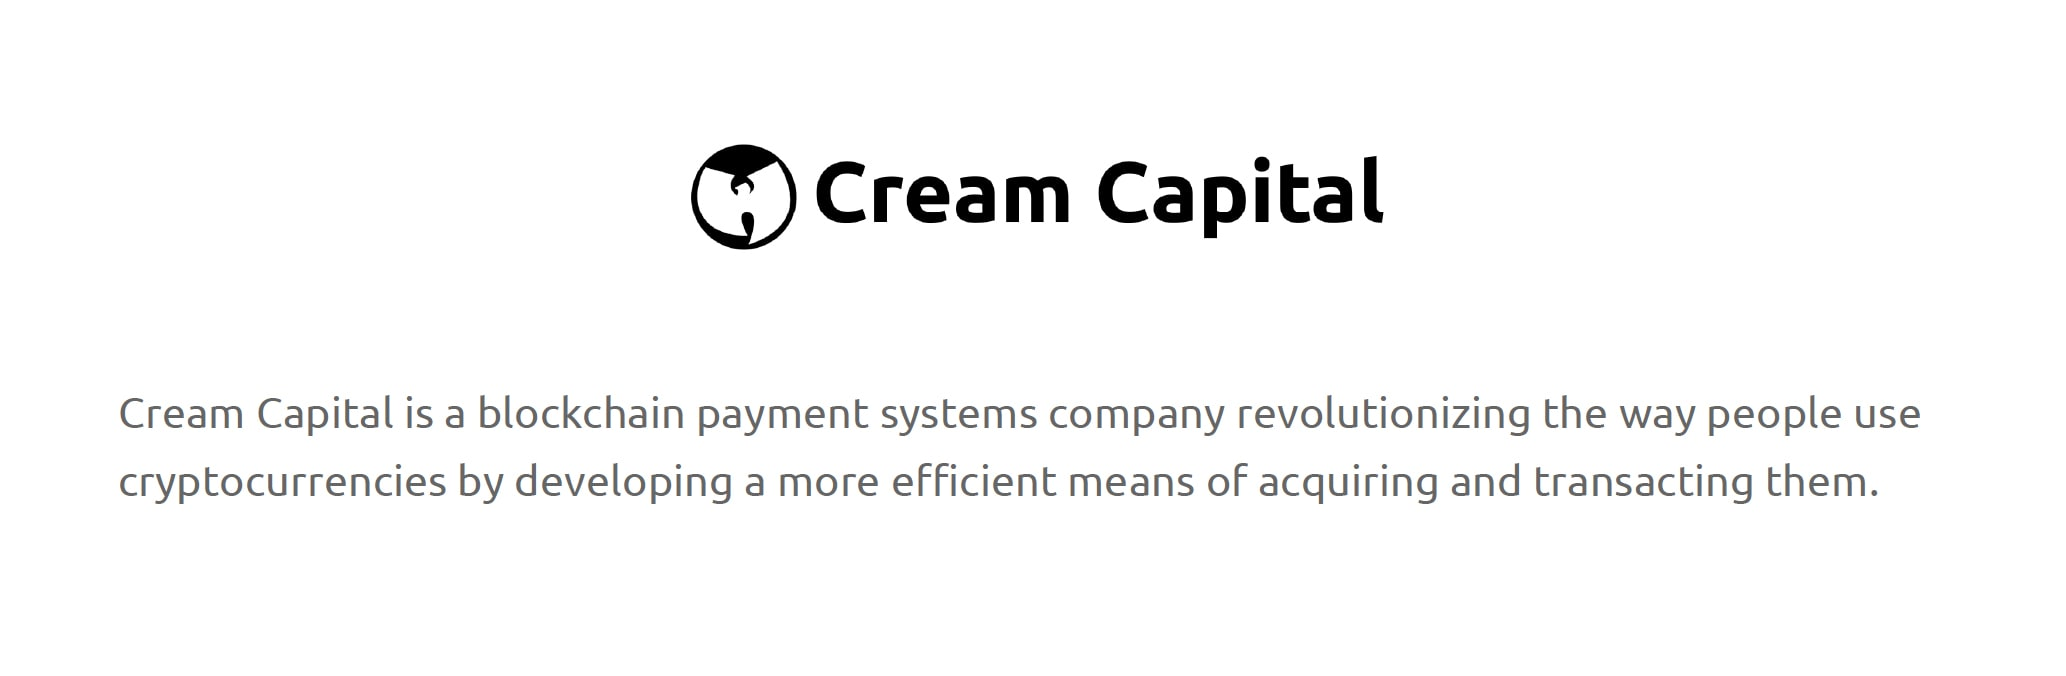 cream-capital-blurb